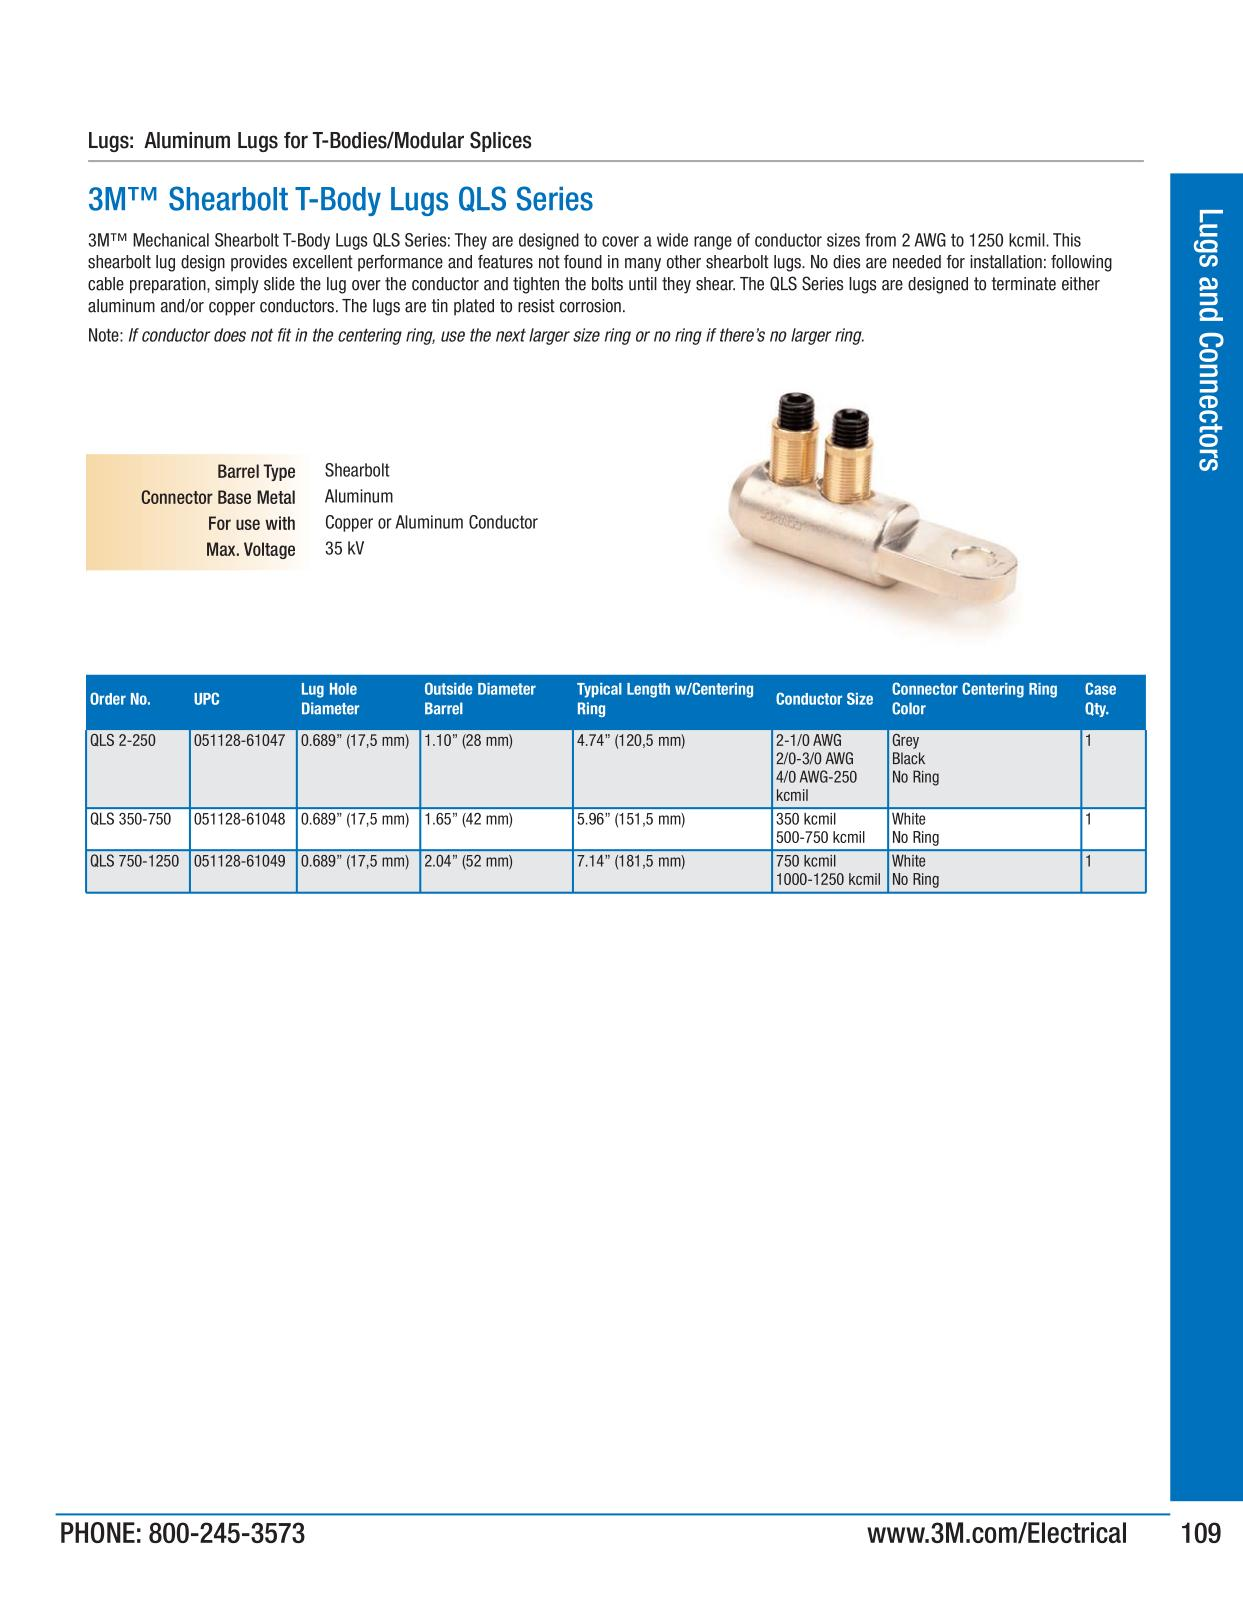 Lugs and connectors 3m big deal promotion page 109 keyboard keysfo Choice Image